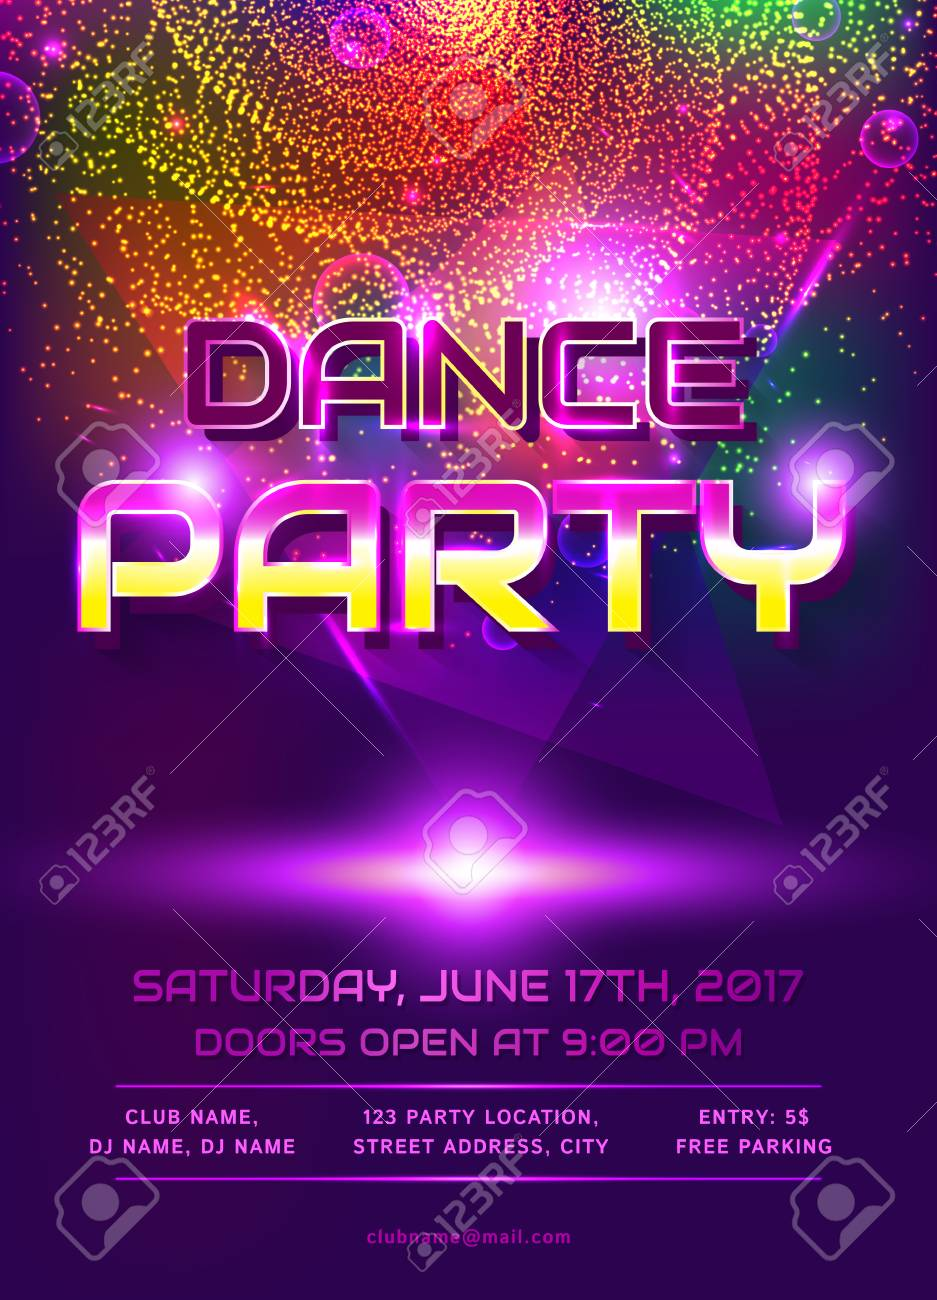 Colorful Flyer For Dance Party Invitation. Template With Shiny ...